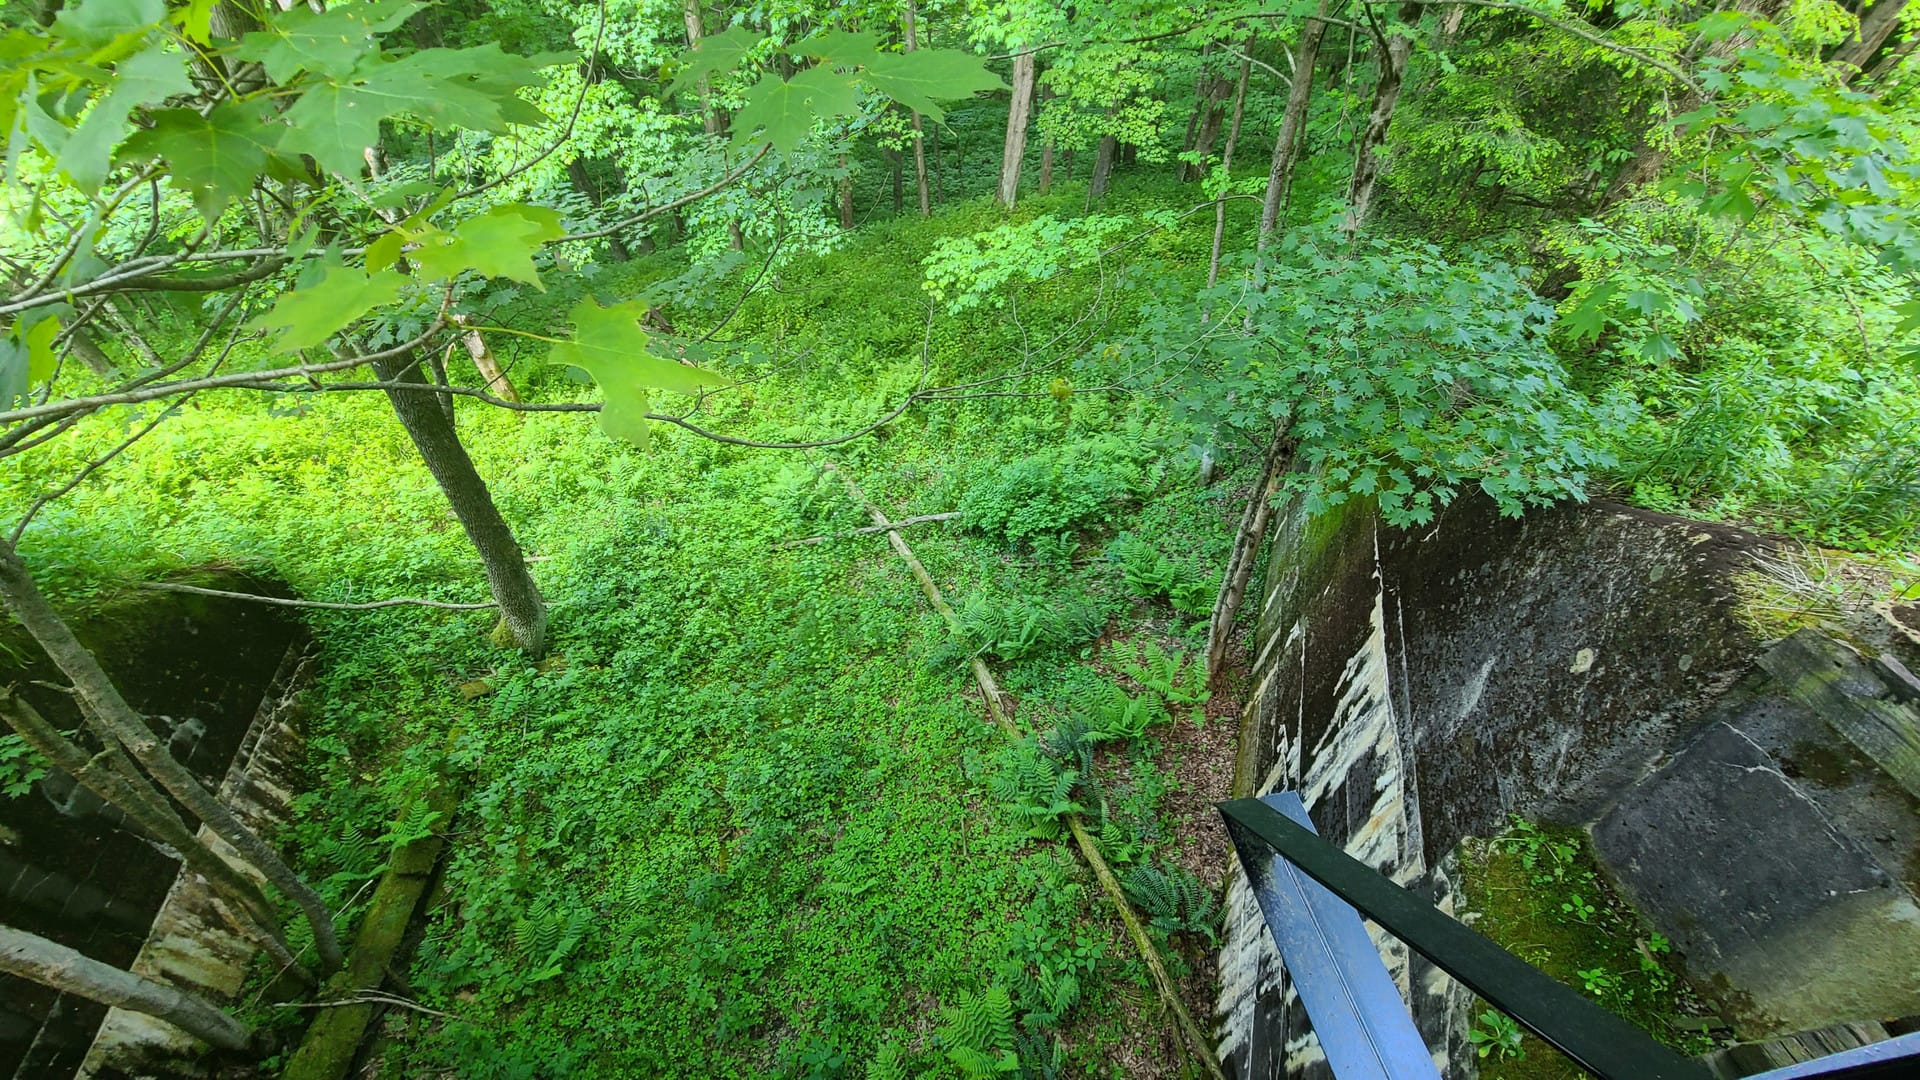 Looking down from a bridge, showing signs of an old road